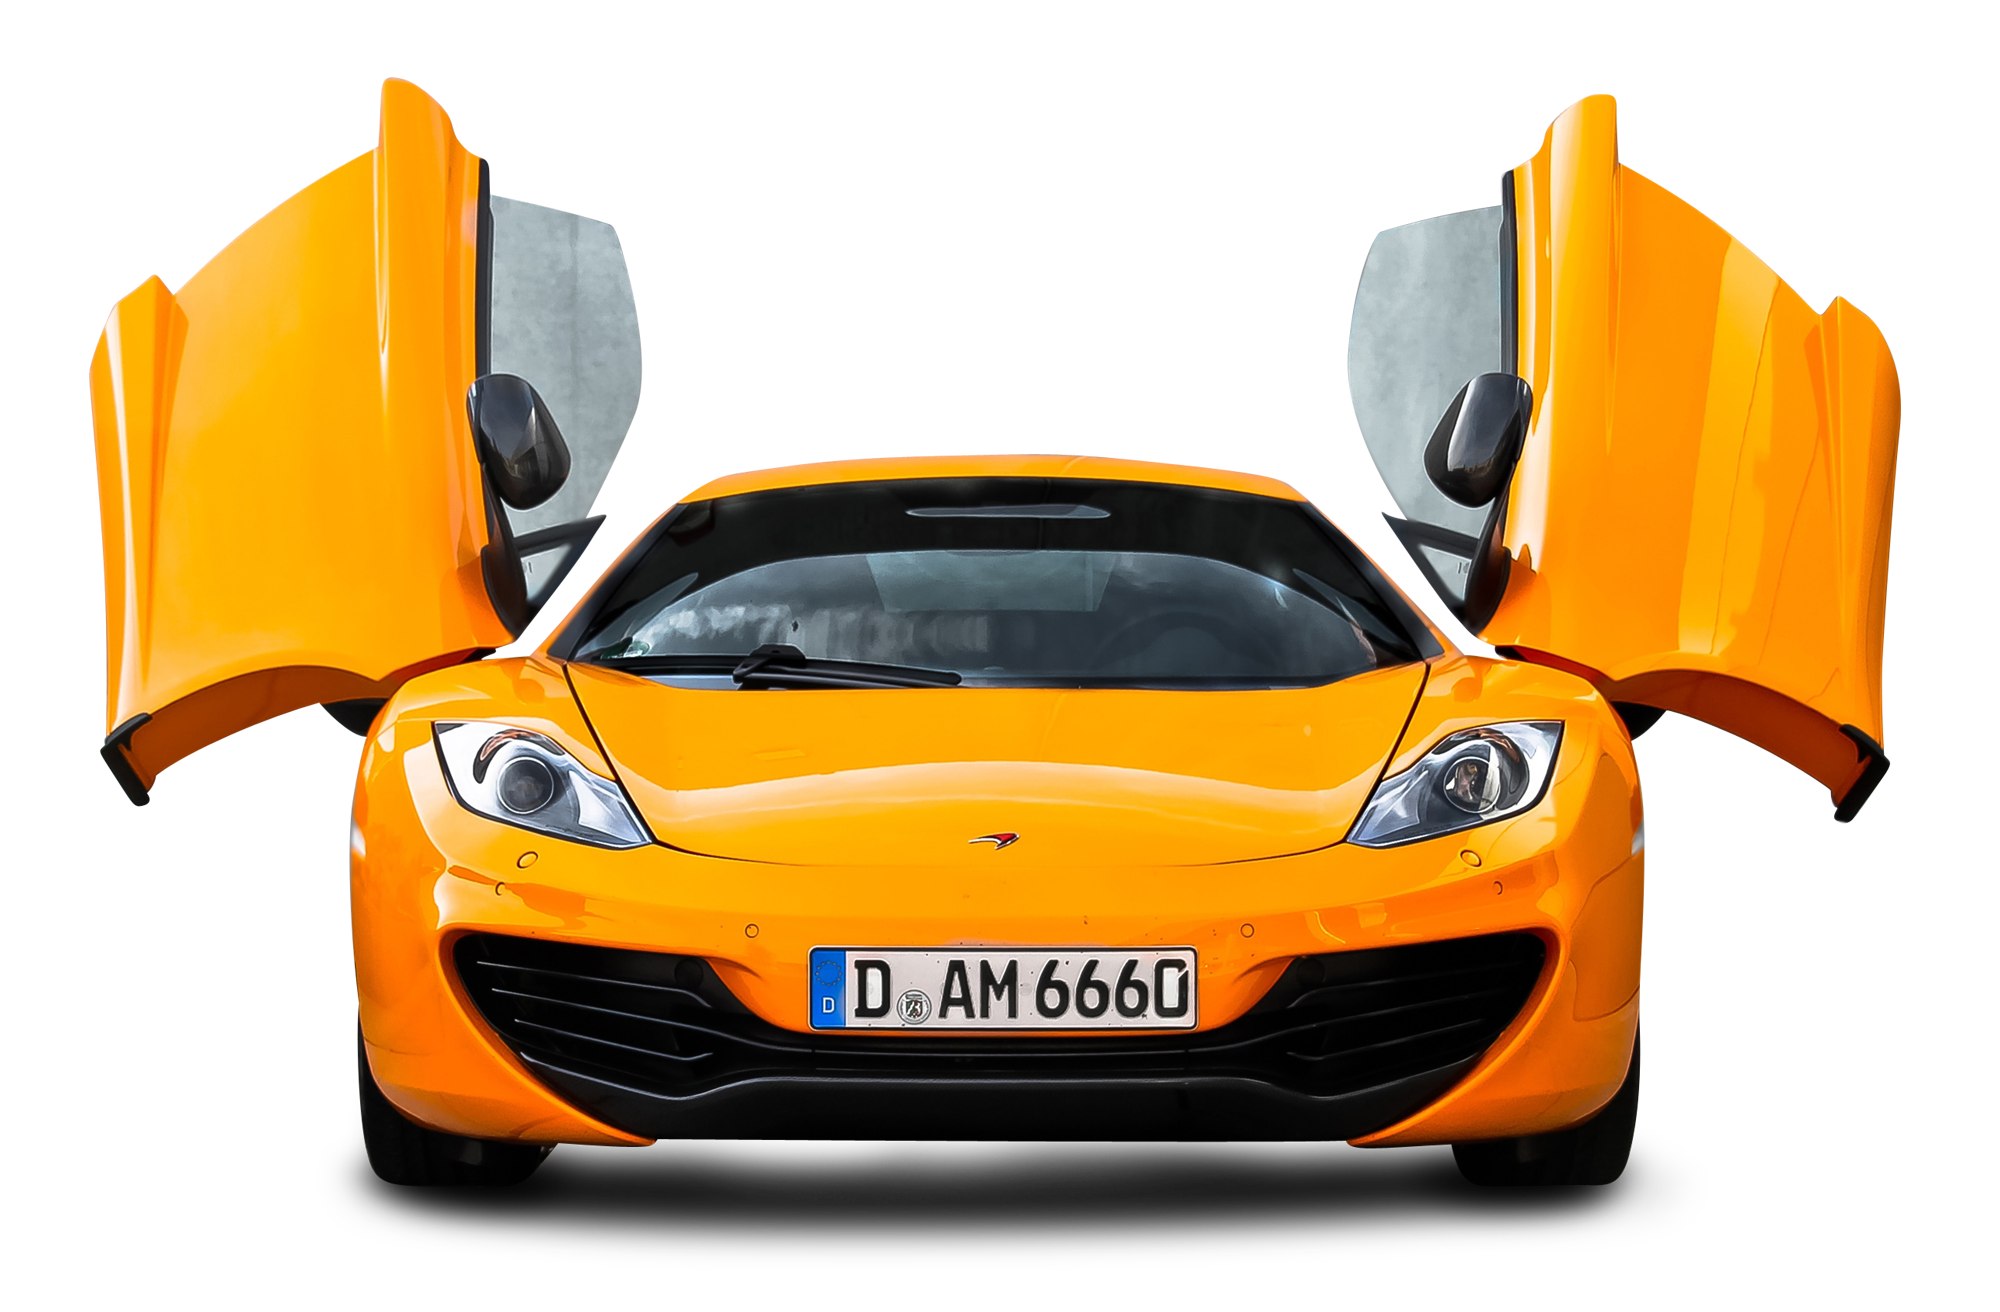 PNG File Name: Car PNG HD Dim